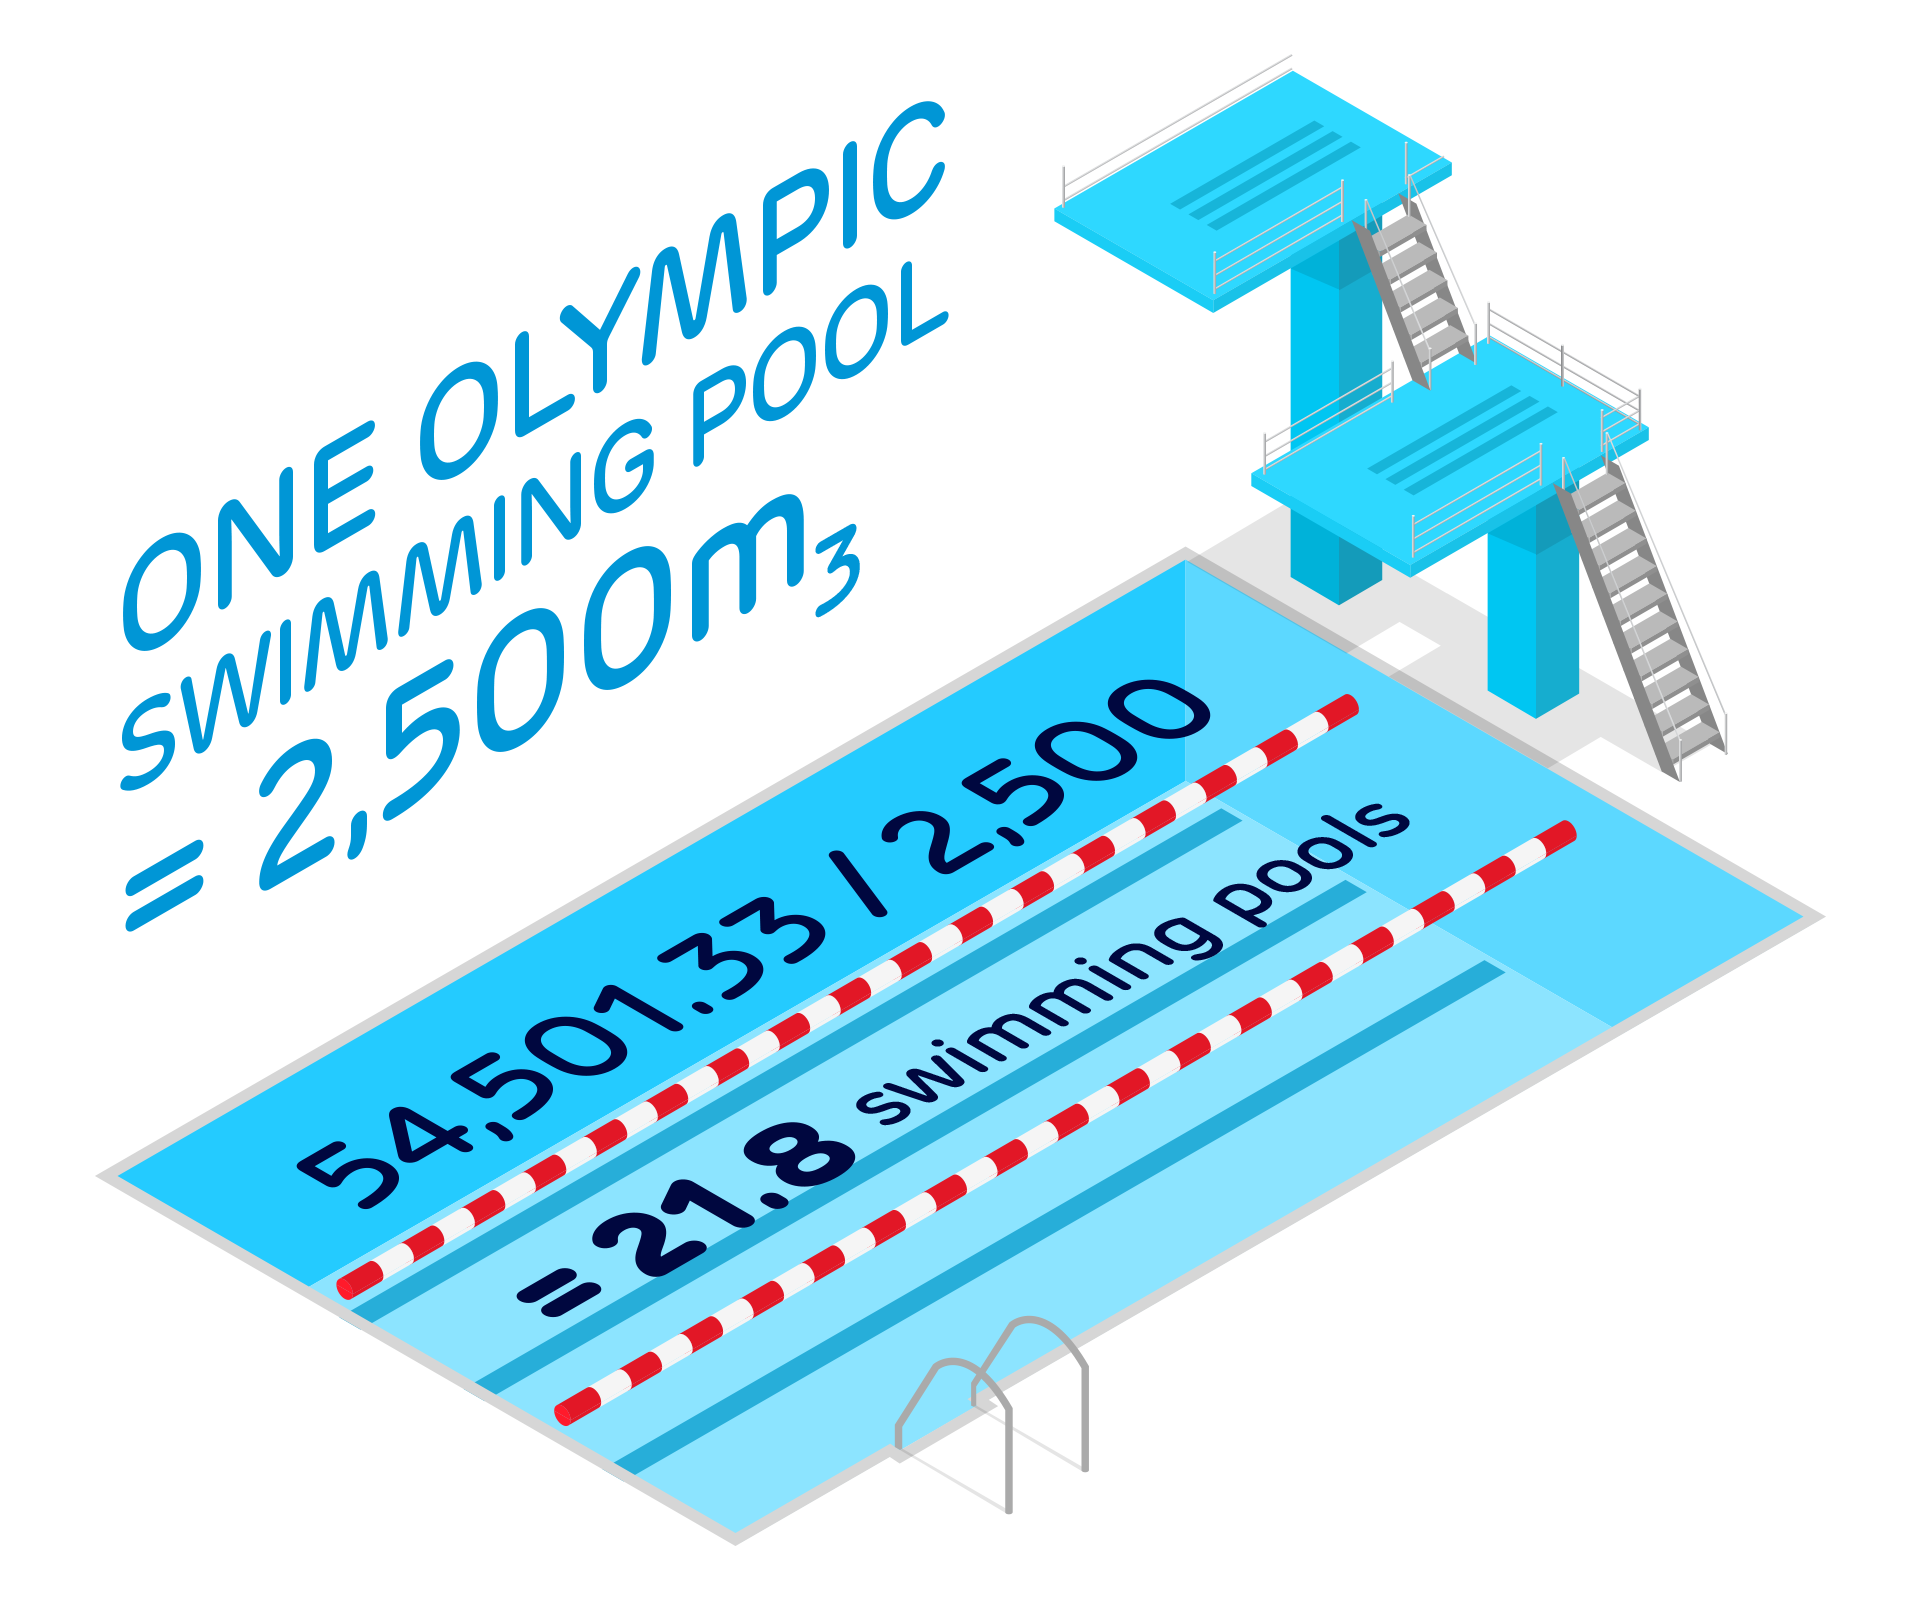 Haven Power saves enough carbon to fill 21 Olympic swimming pools - image